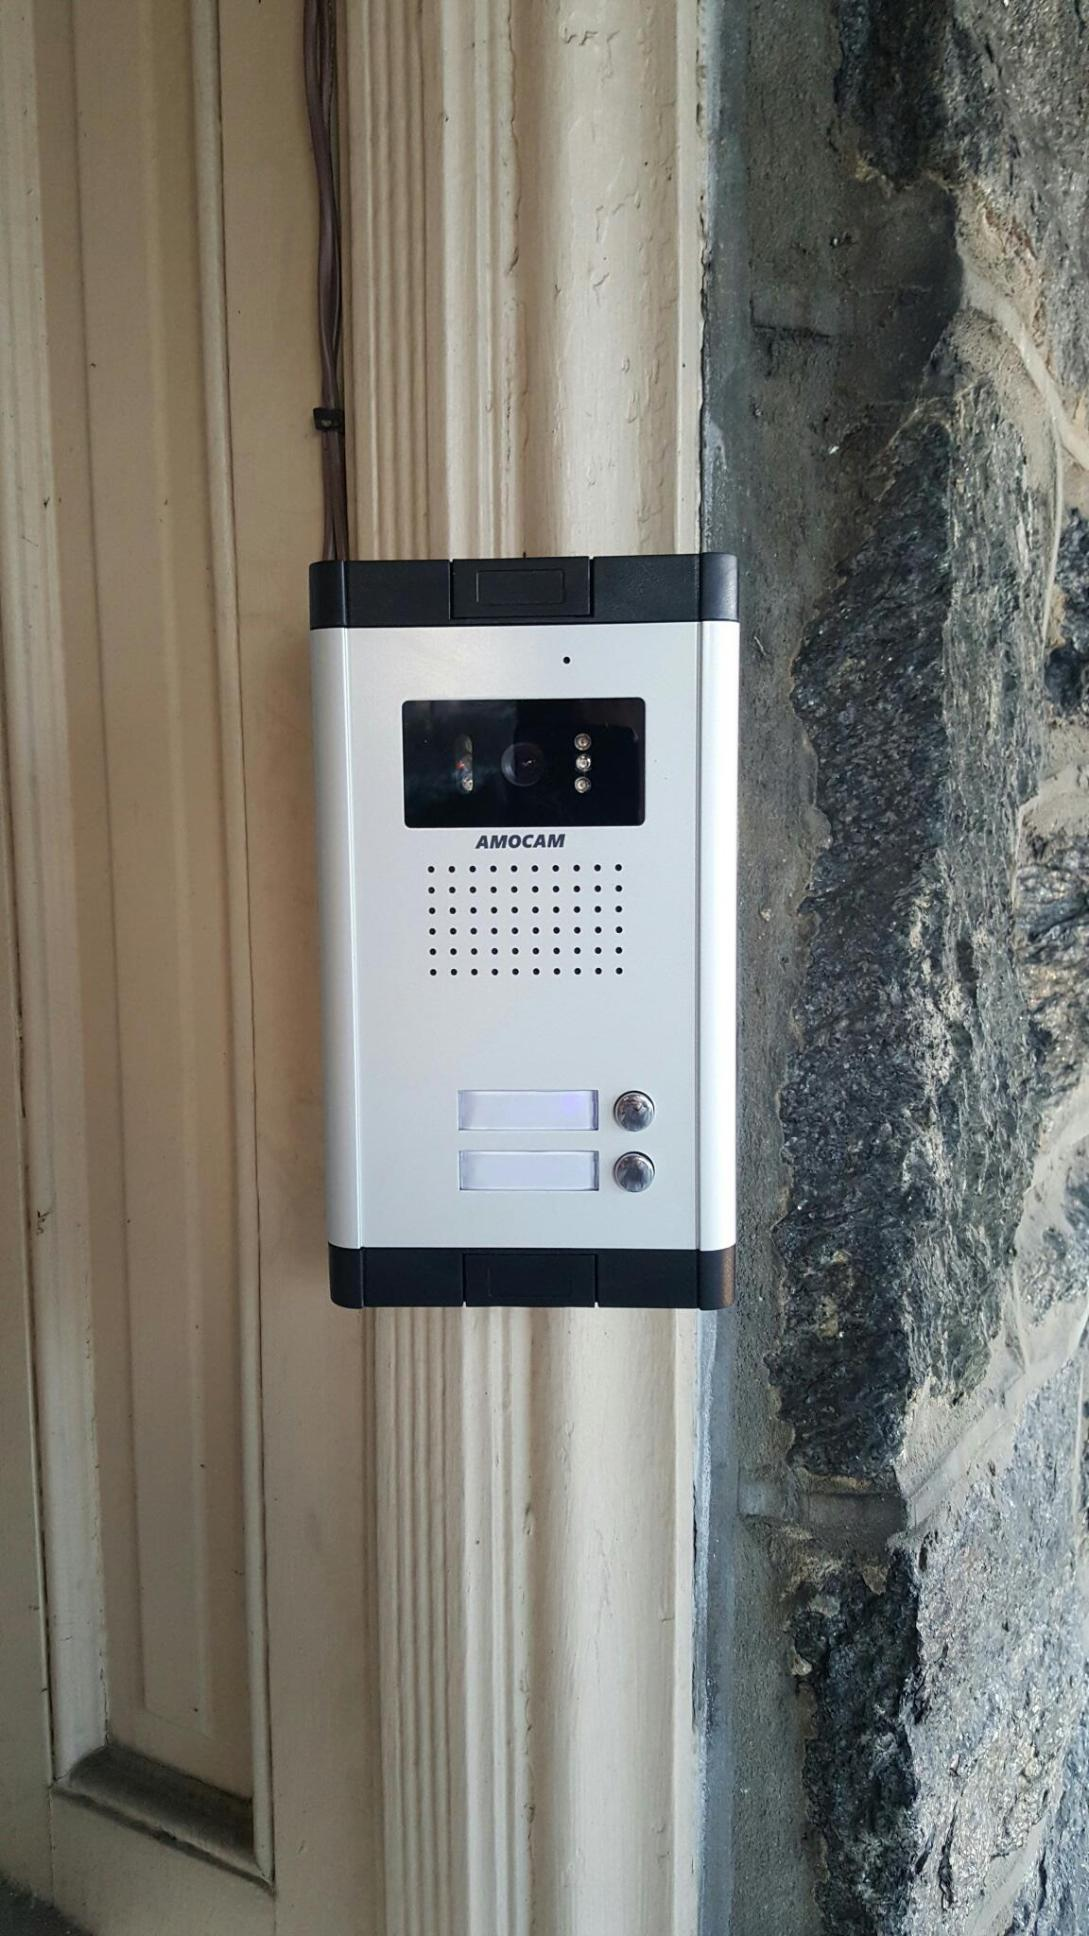 Intercom Systems For Your Business